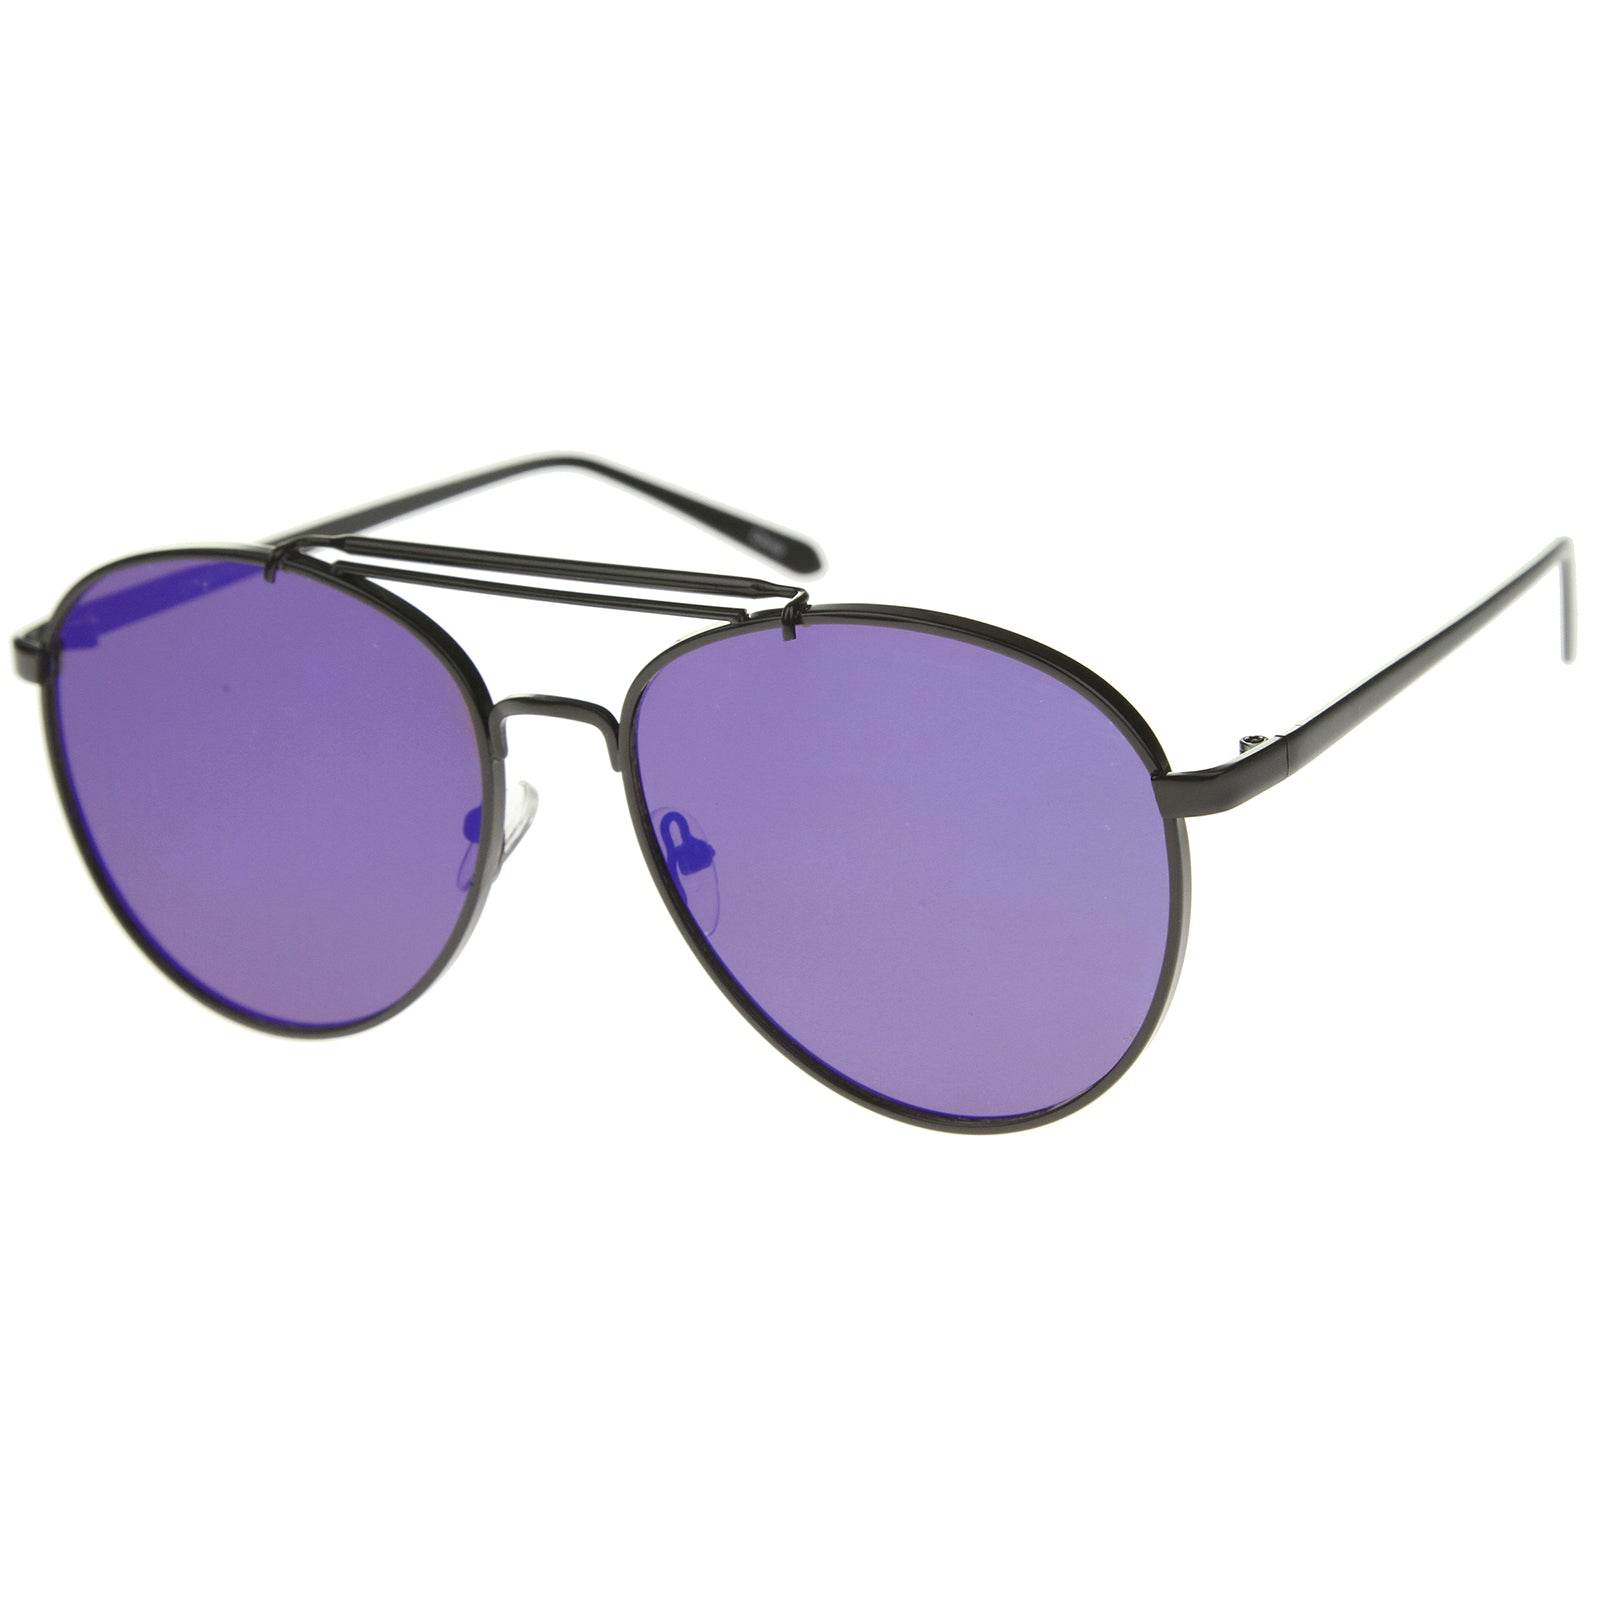 Large Metal Teardrop Double Bridge Mirrored Flat Lens Aviator Sunglasses 60mm - sunglass.la - 10